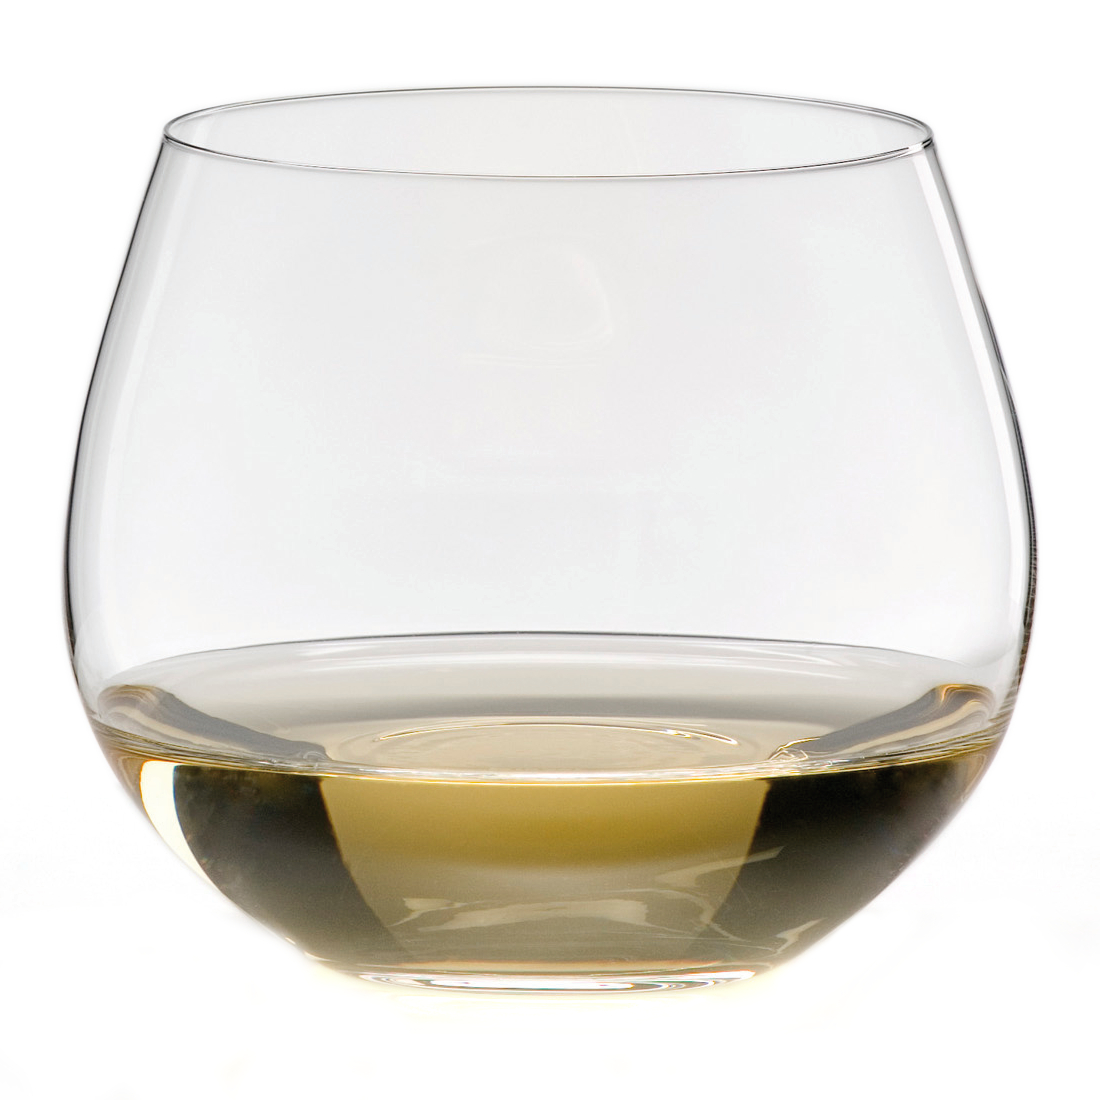 Riedel O Wine/Chardonnay Stemless Glasses, Set of 2